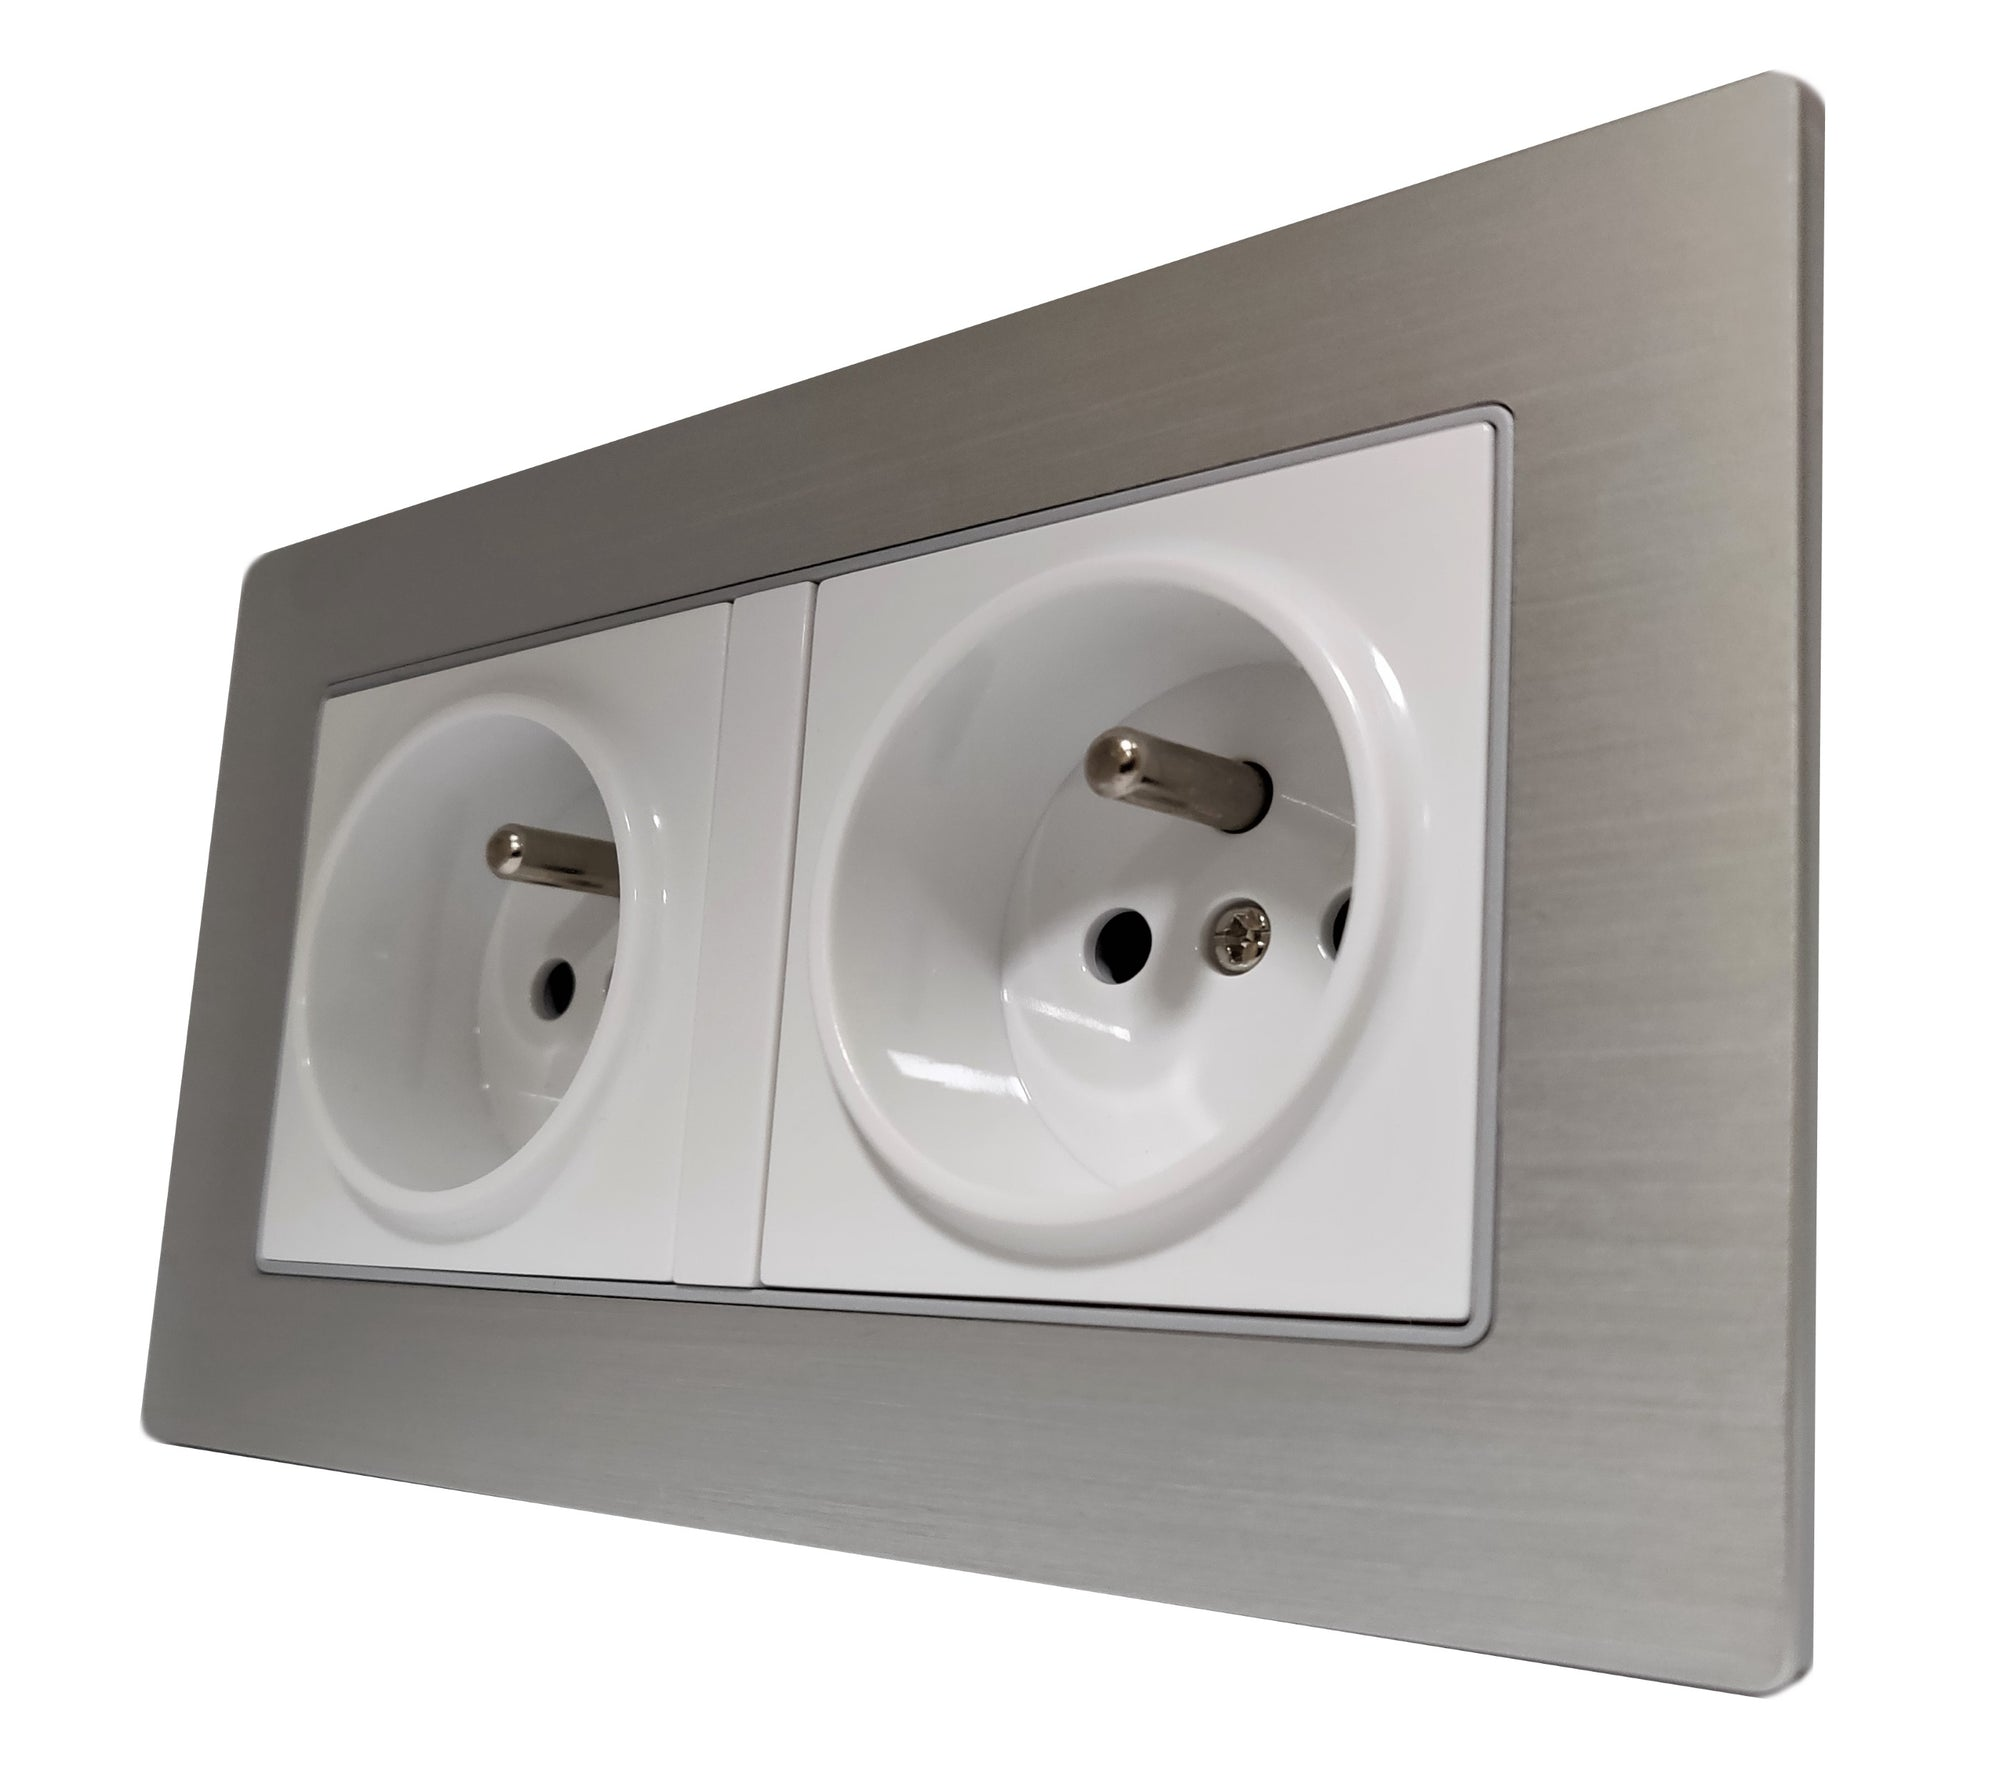 Double French EU 16A 2-Pin AC Wall Power Socket in Silver Brushed Alum Frame & White Centre